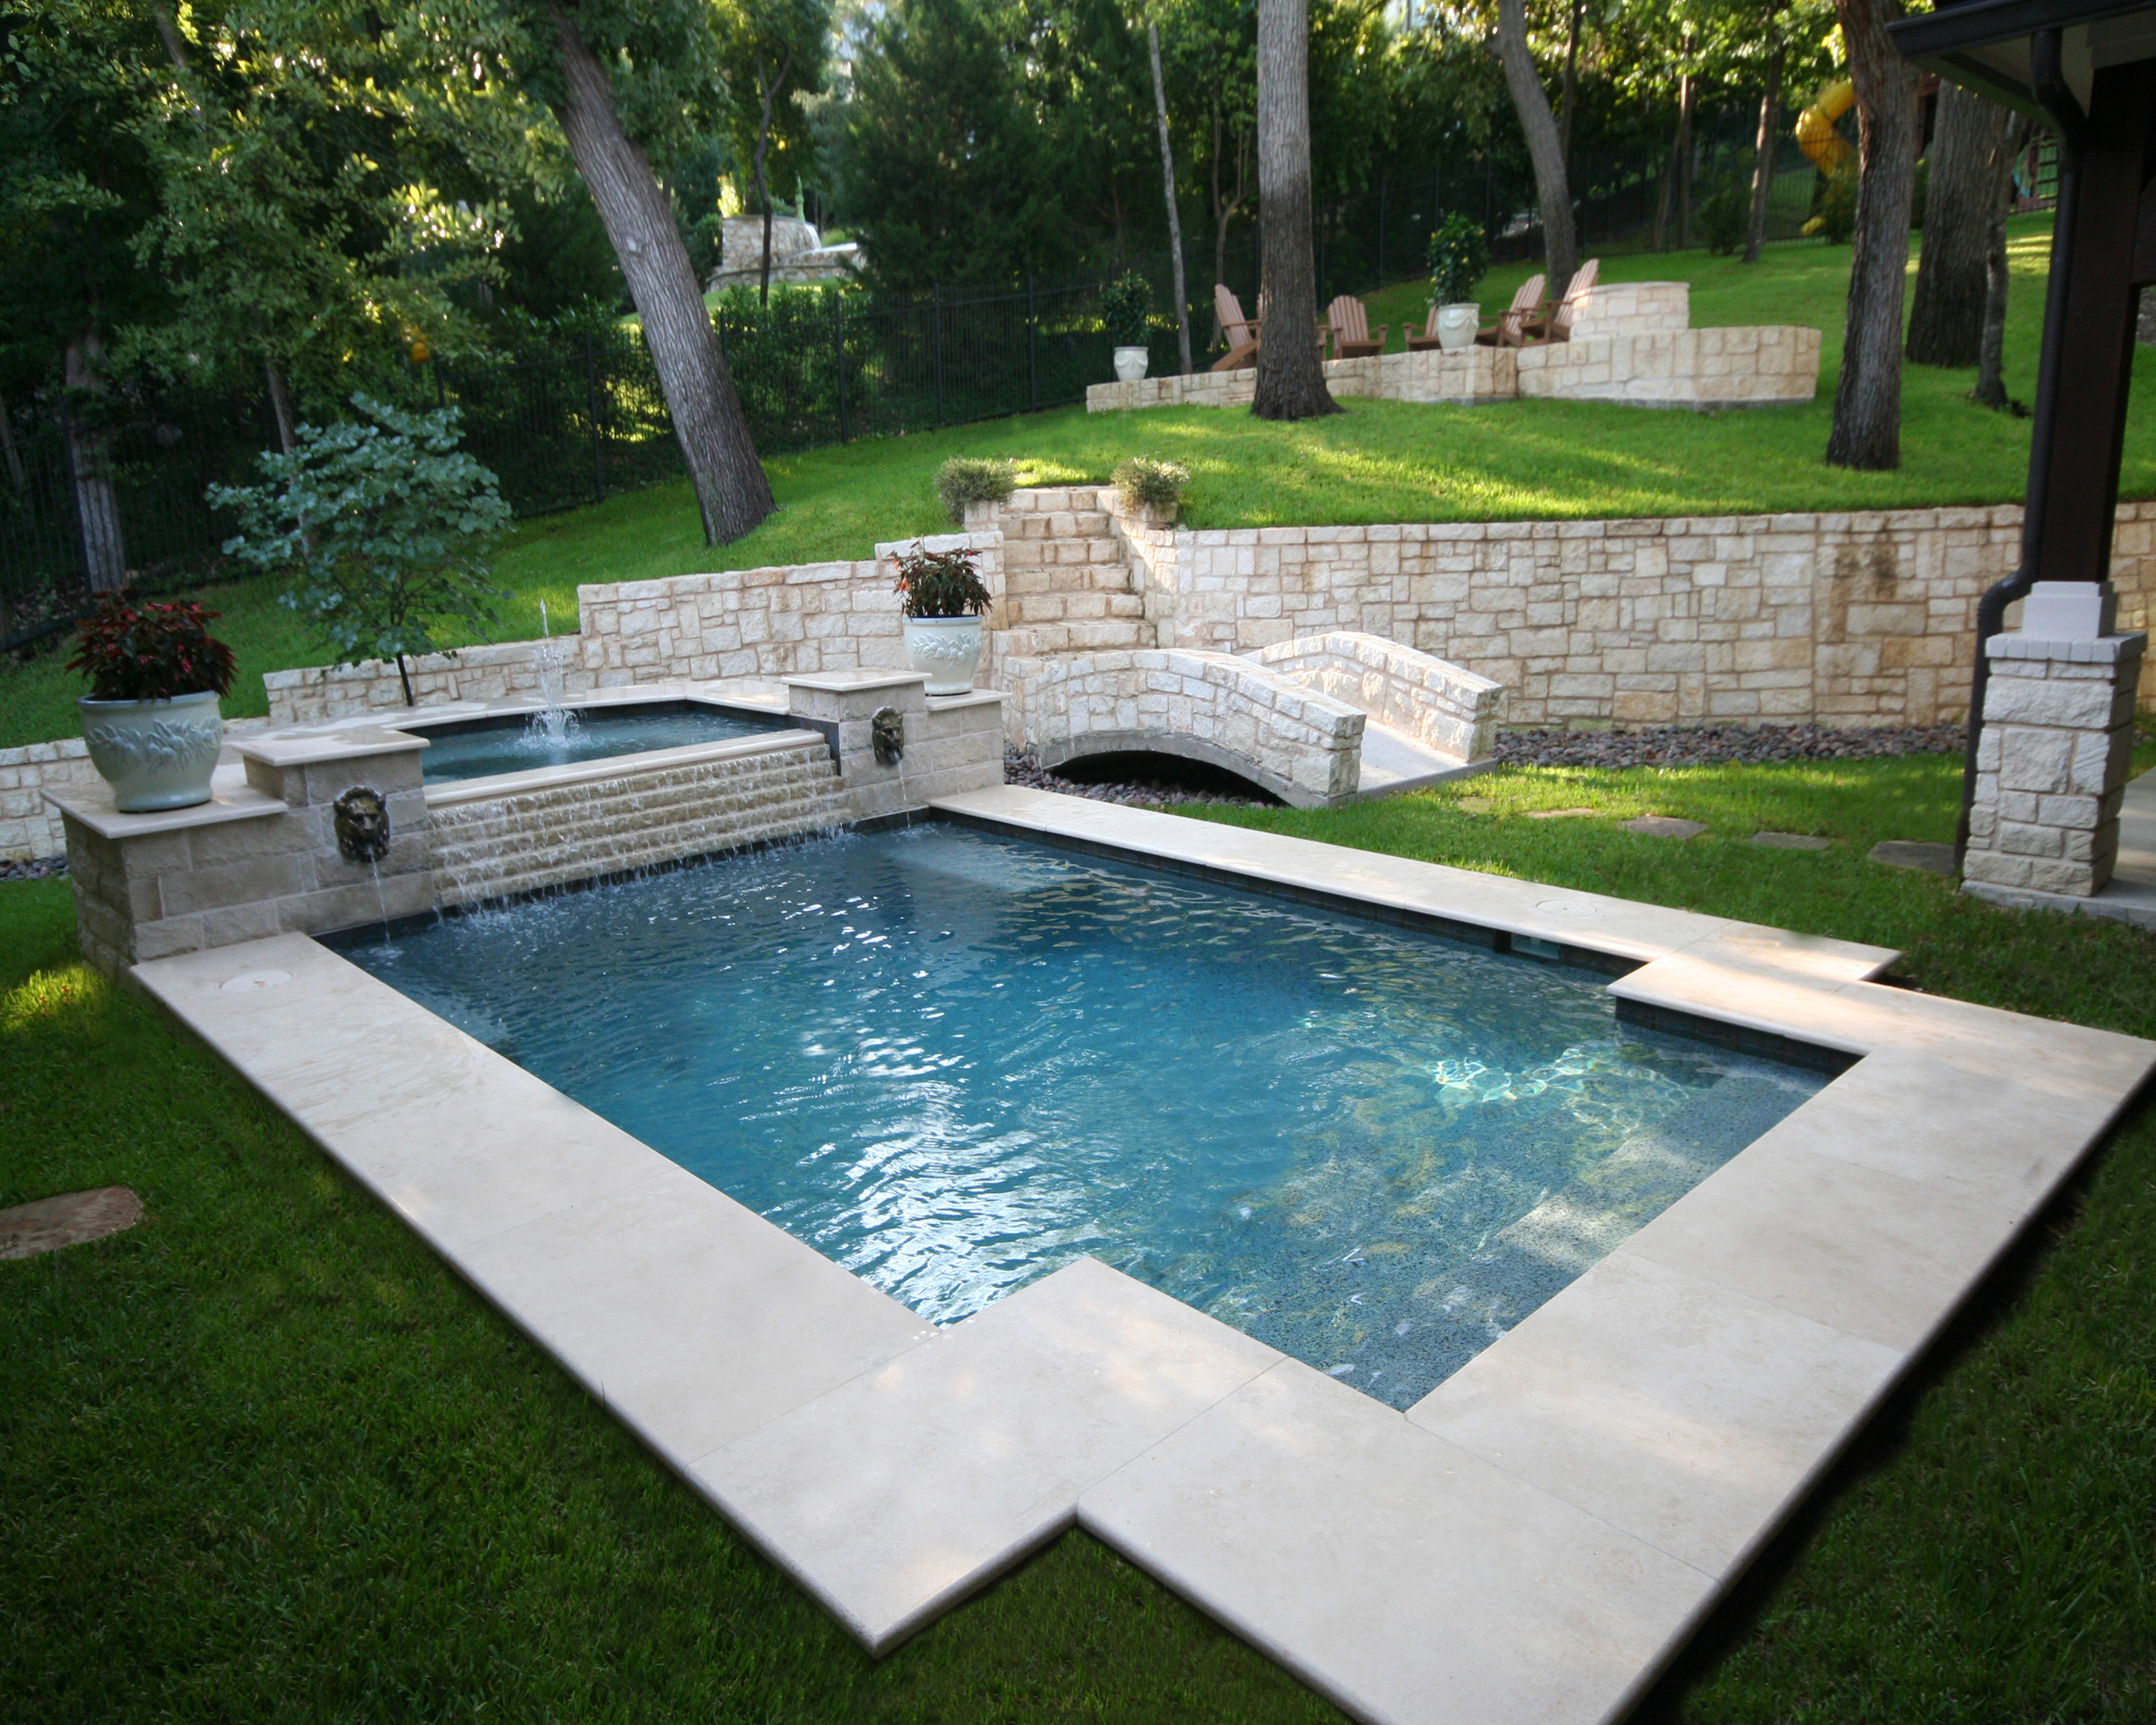 Pool Ideas For Small Backyards | Backyard Pool Designs | Underground Swimming Pools